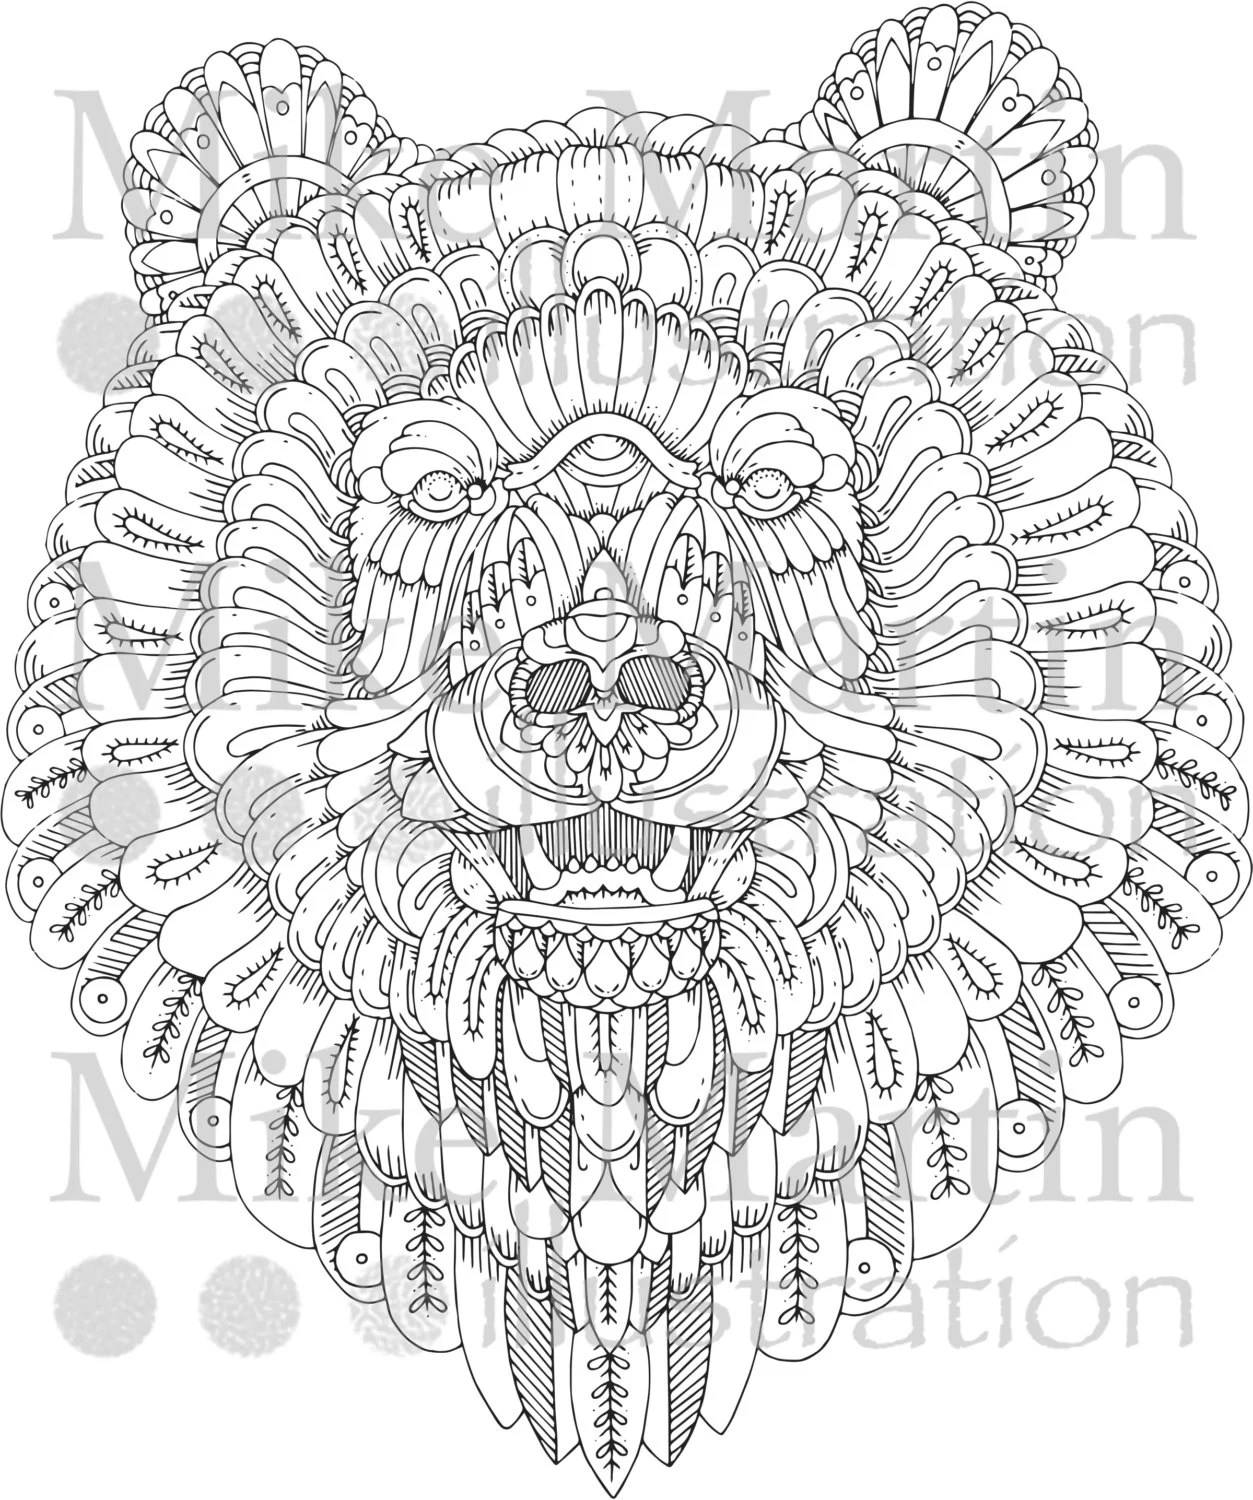 Printable Ornate Grizzly Bear Instant Download Adult Colouring